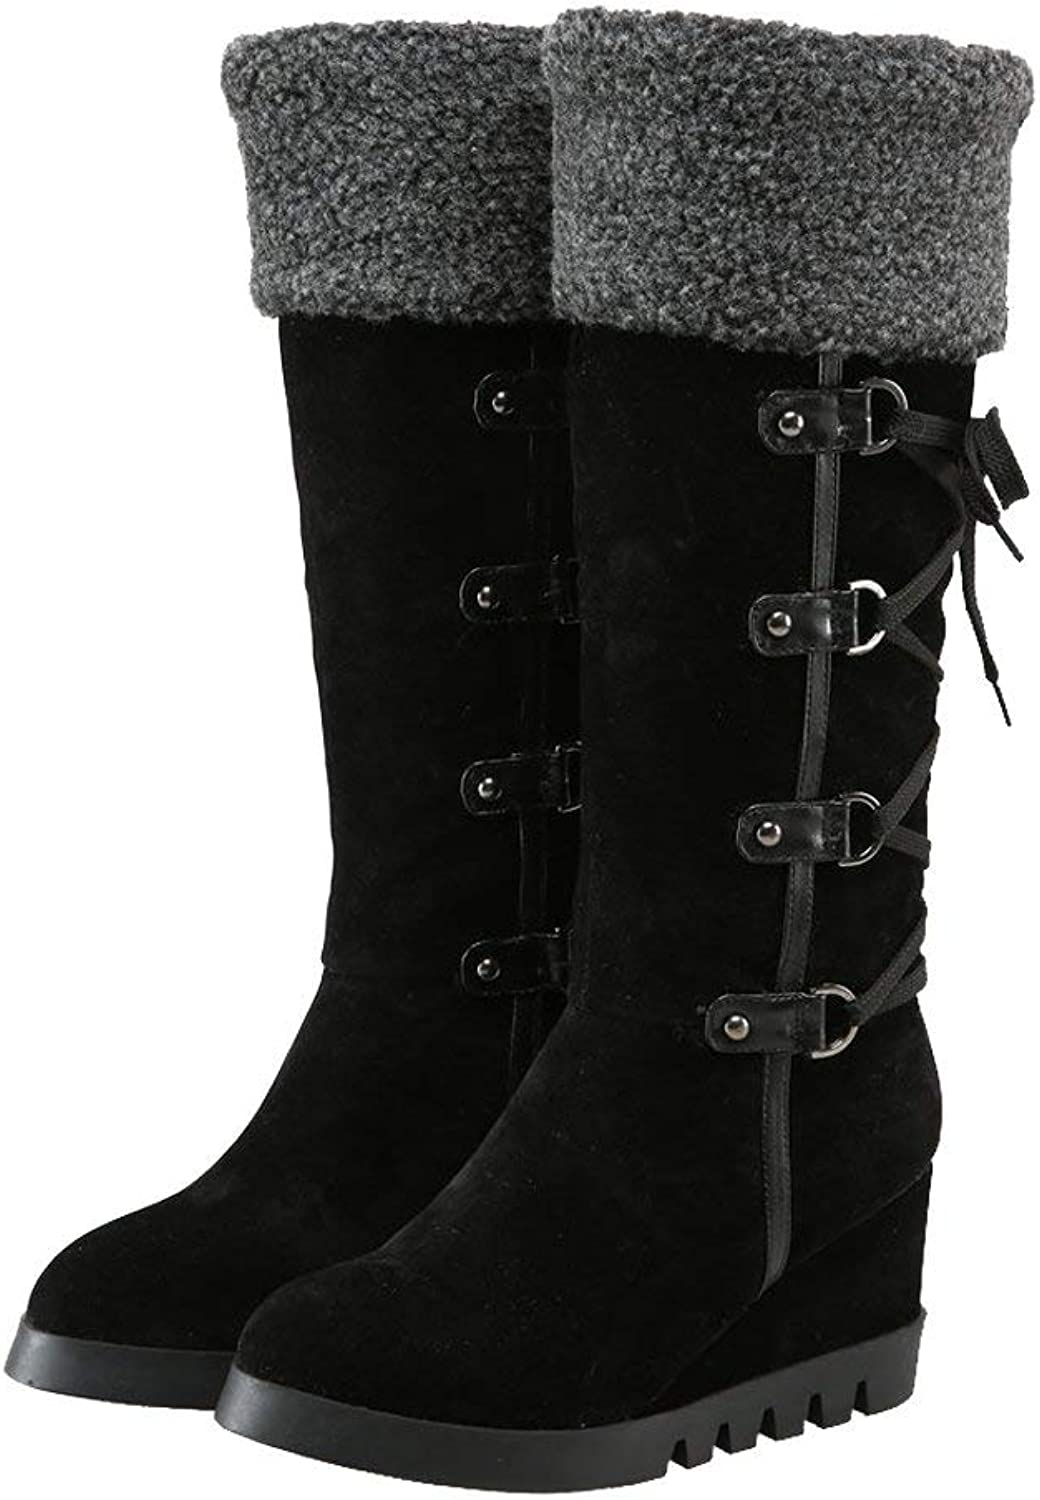 Ghapwe Women's Faux Fur Knee High Wedges Winter Snow Boots Black 7 M US